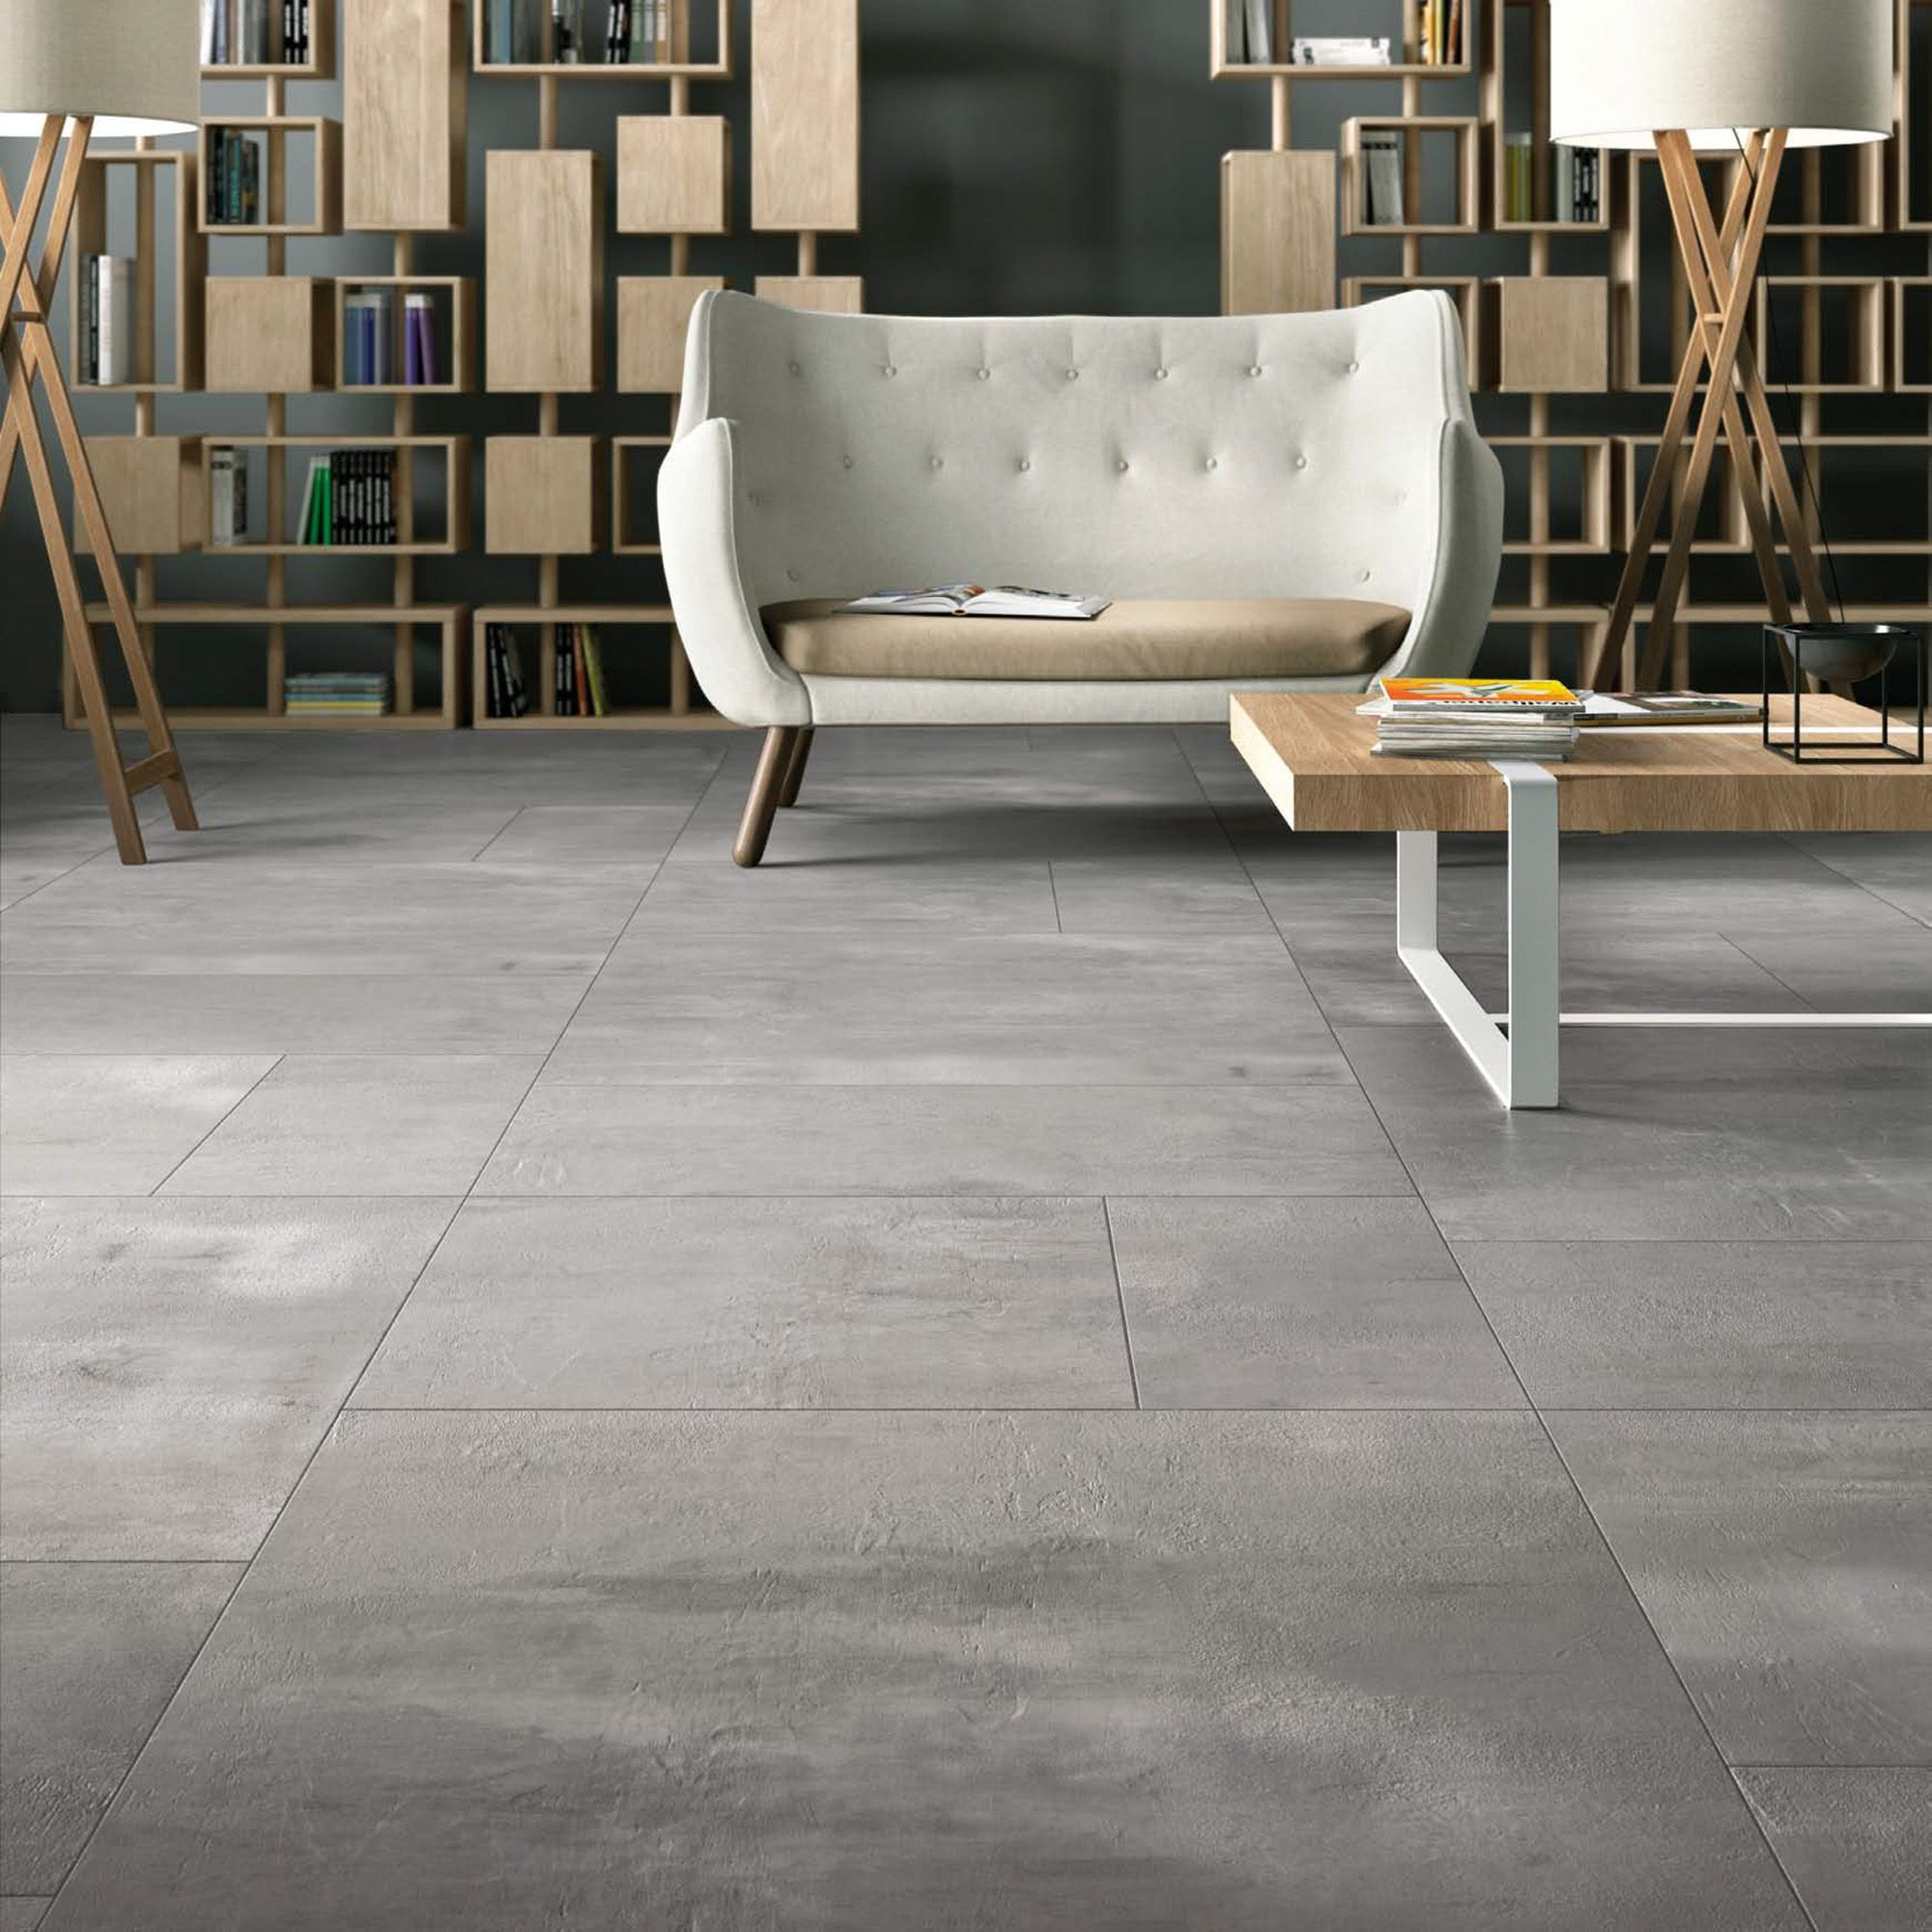 Italian full body porcelain tile foundation series concrete italian full body porcelain tile foundation series concrete dark gray 12x24 dailygadgetfo Gallery